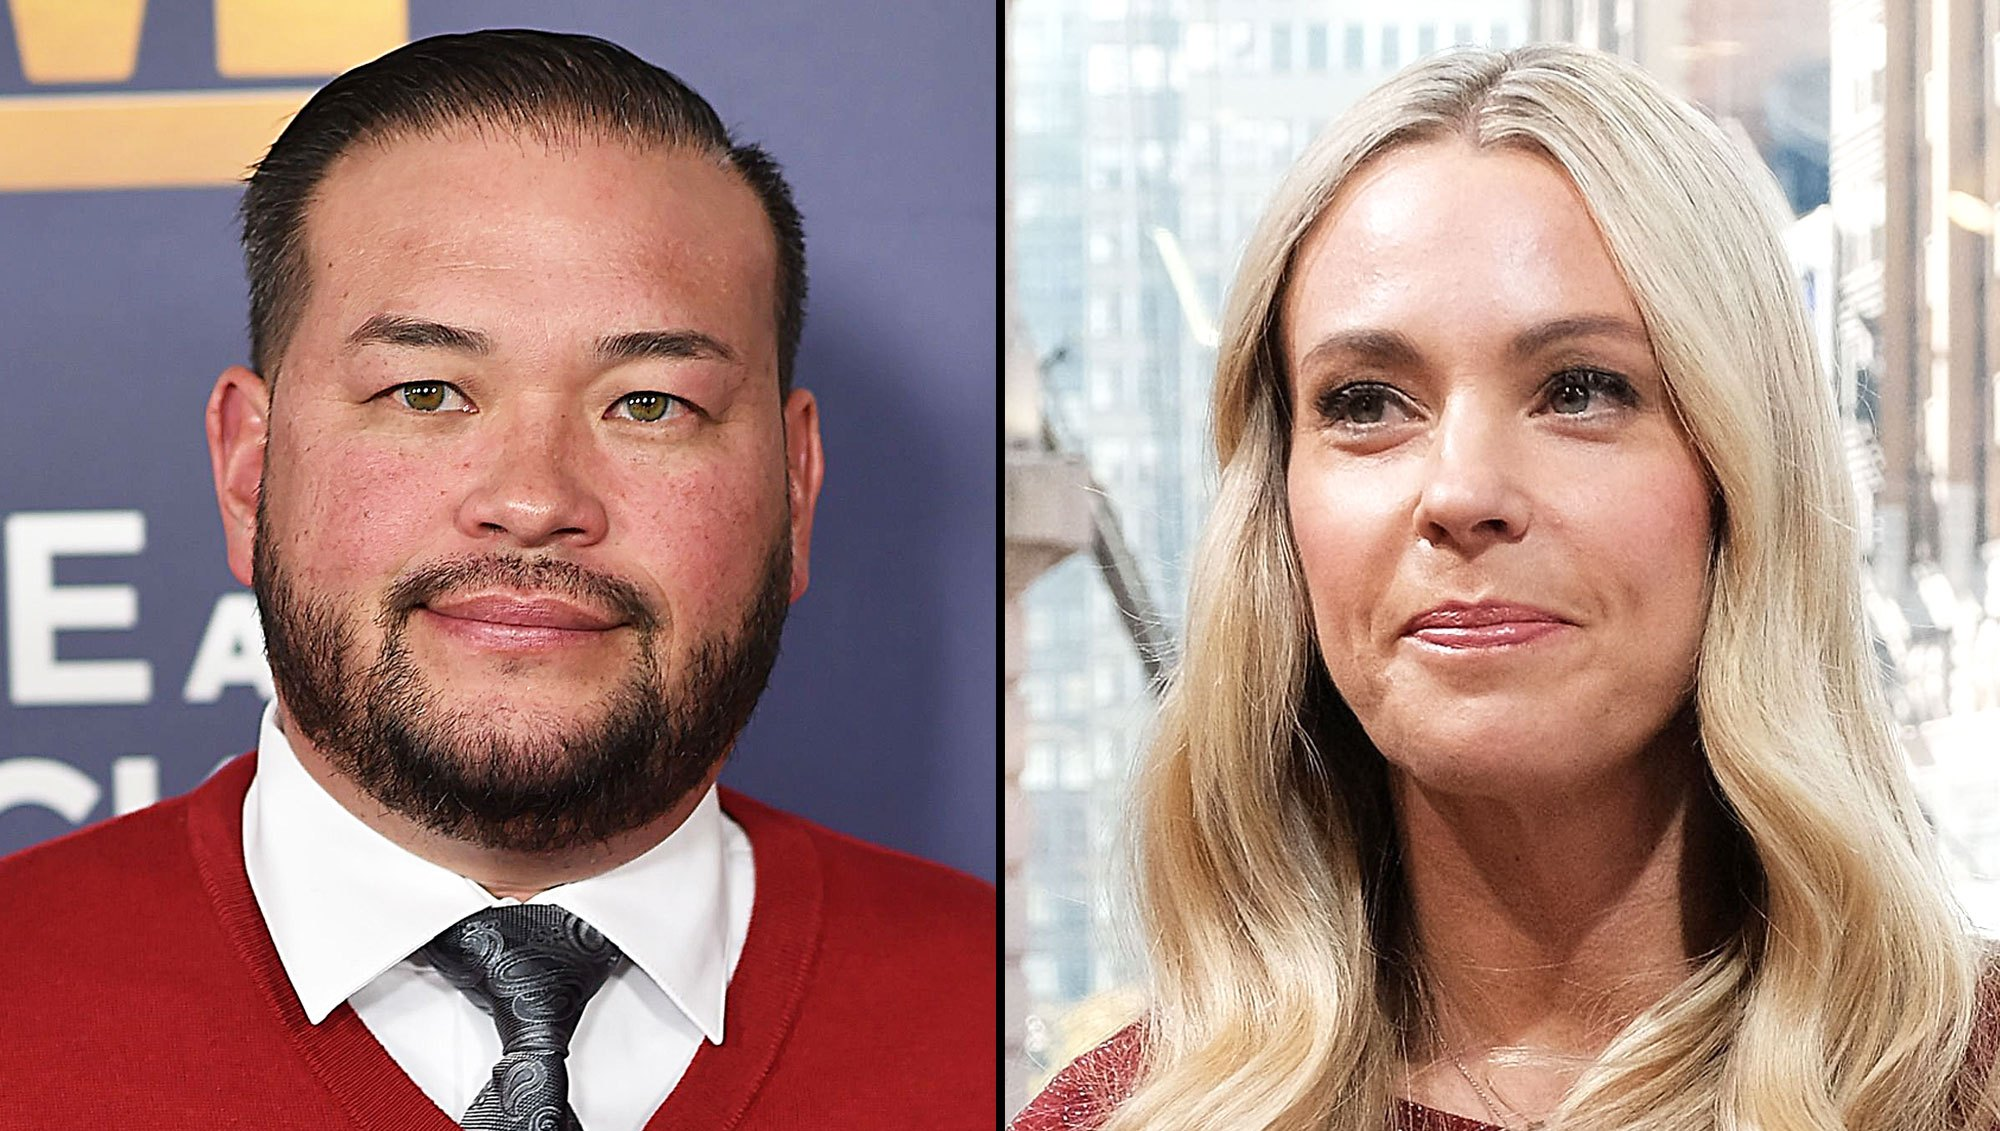 Jon Gosselin and Kate Gosselin